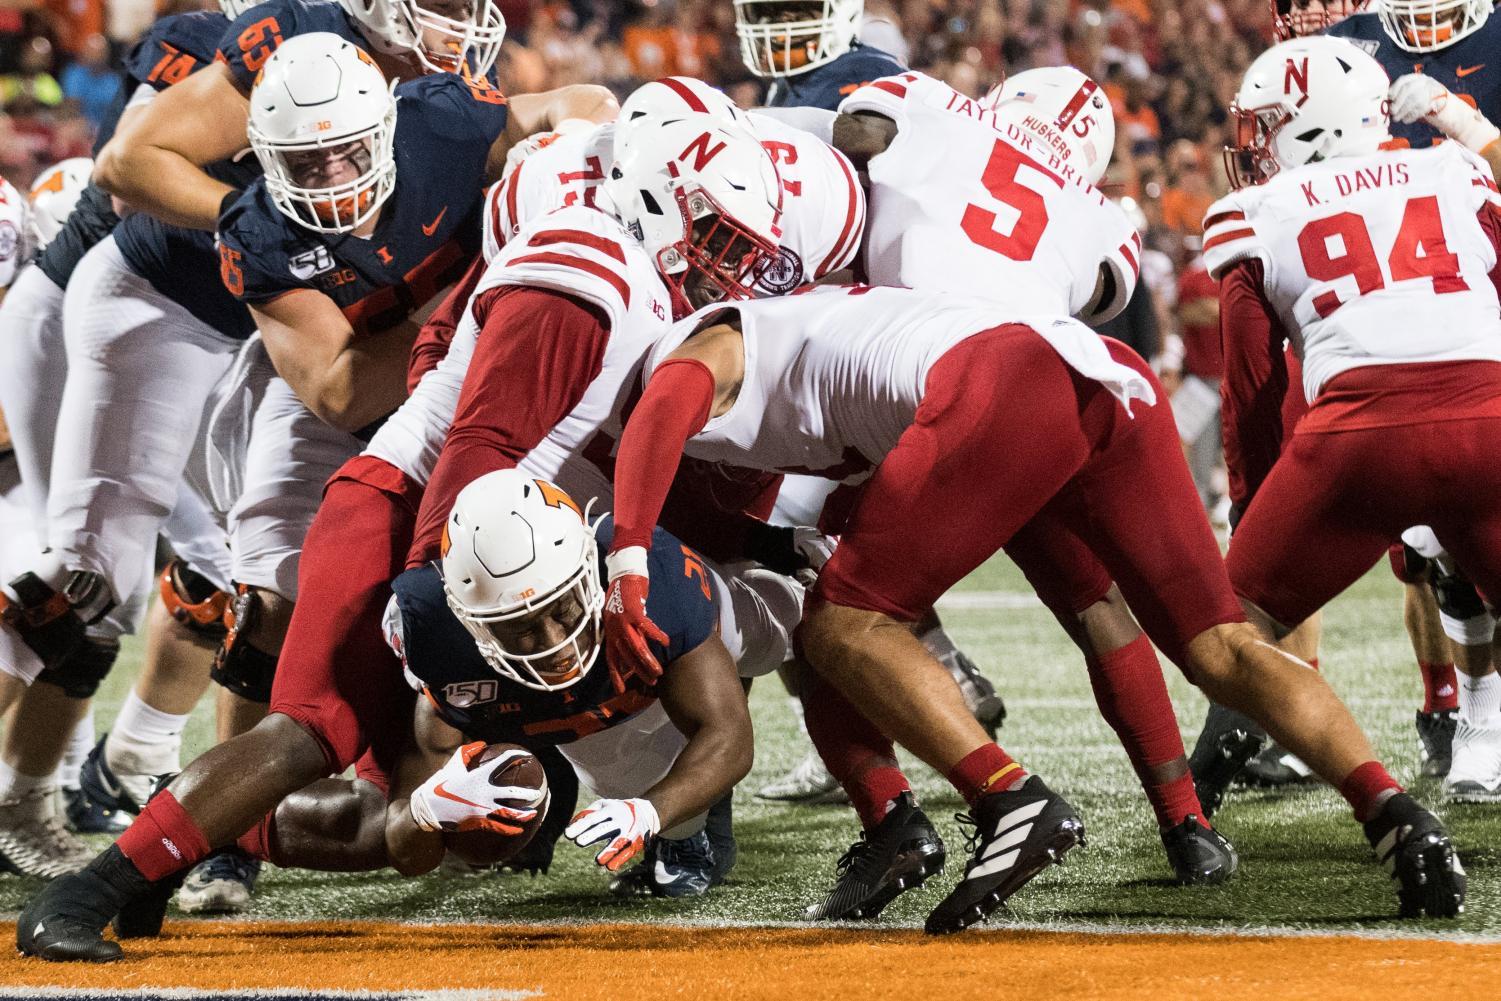 Illini fall to Cornhuskers 42-38